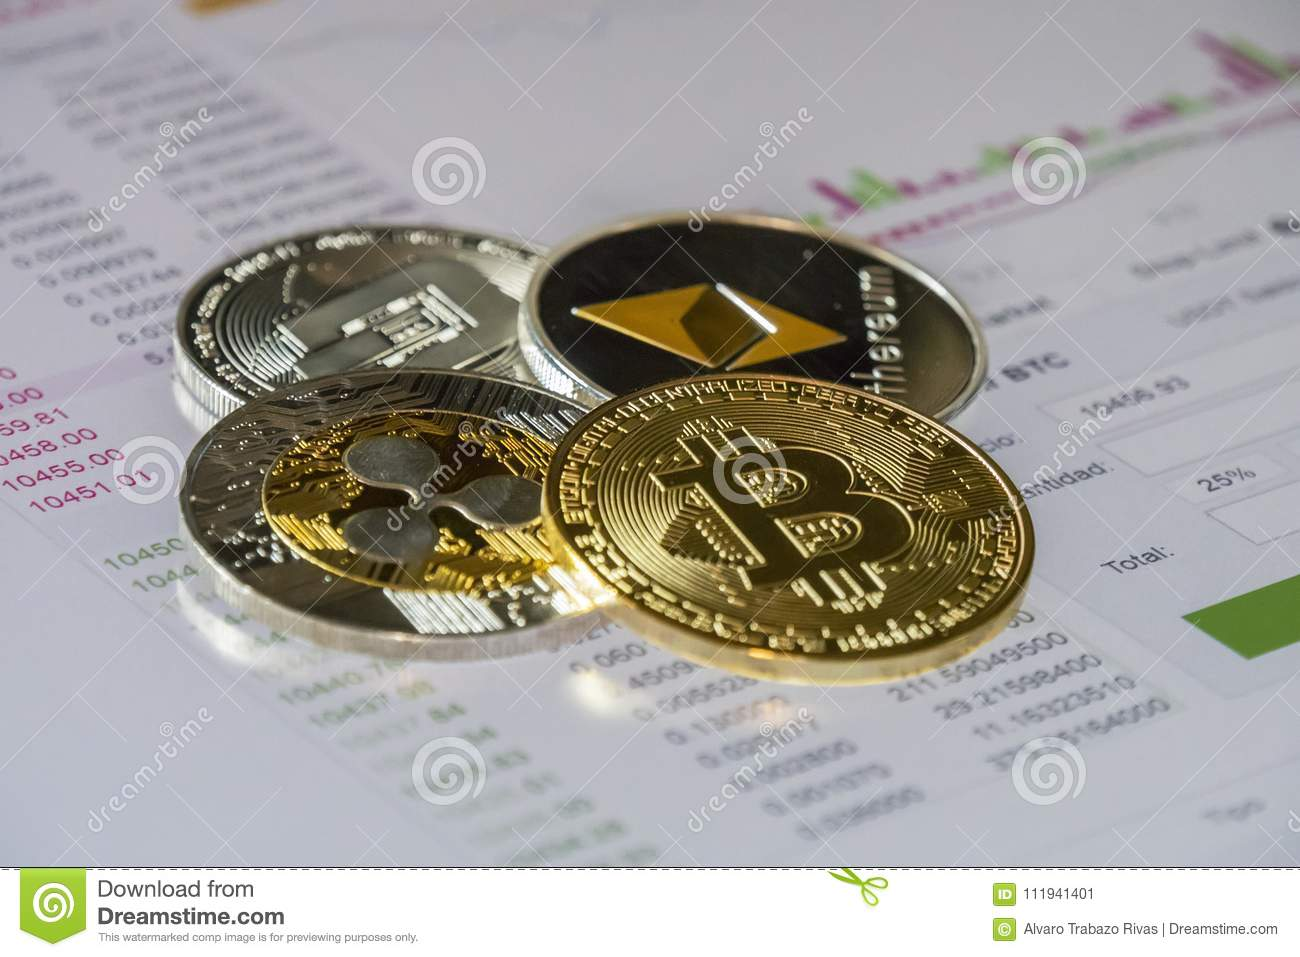 buy cryptocurrency coins